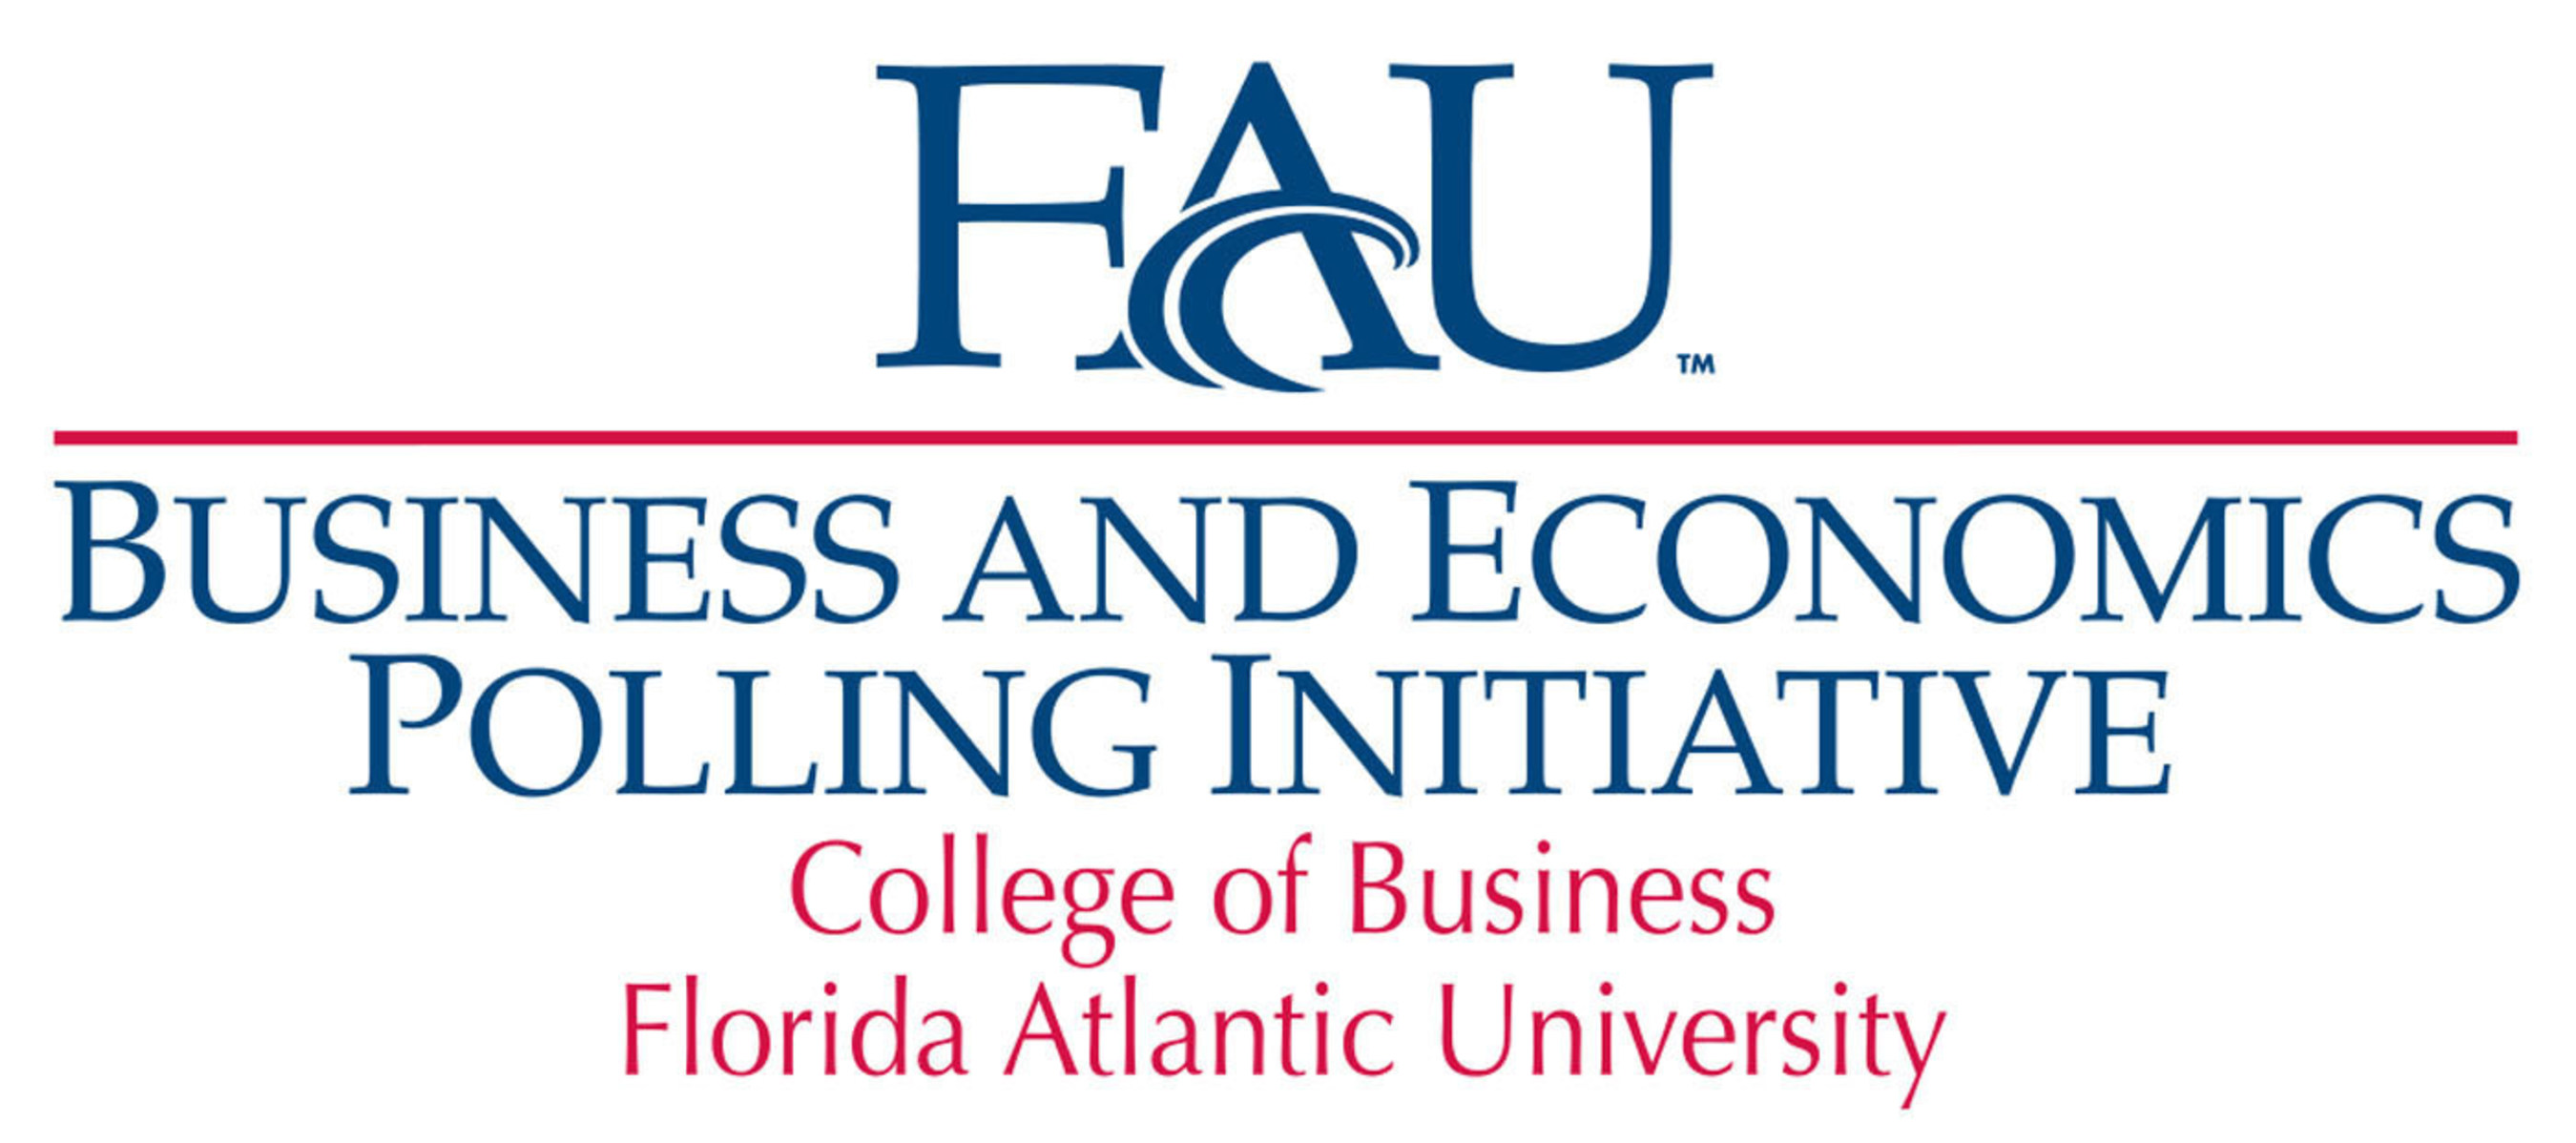 The Business and Economics Polling Initiative (BEPI) at Florida Atlantic University conducts surveys on ...